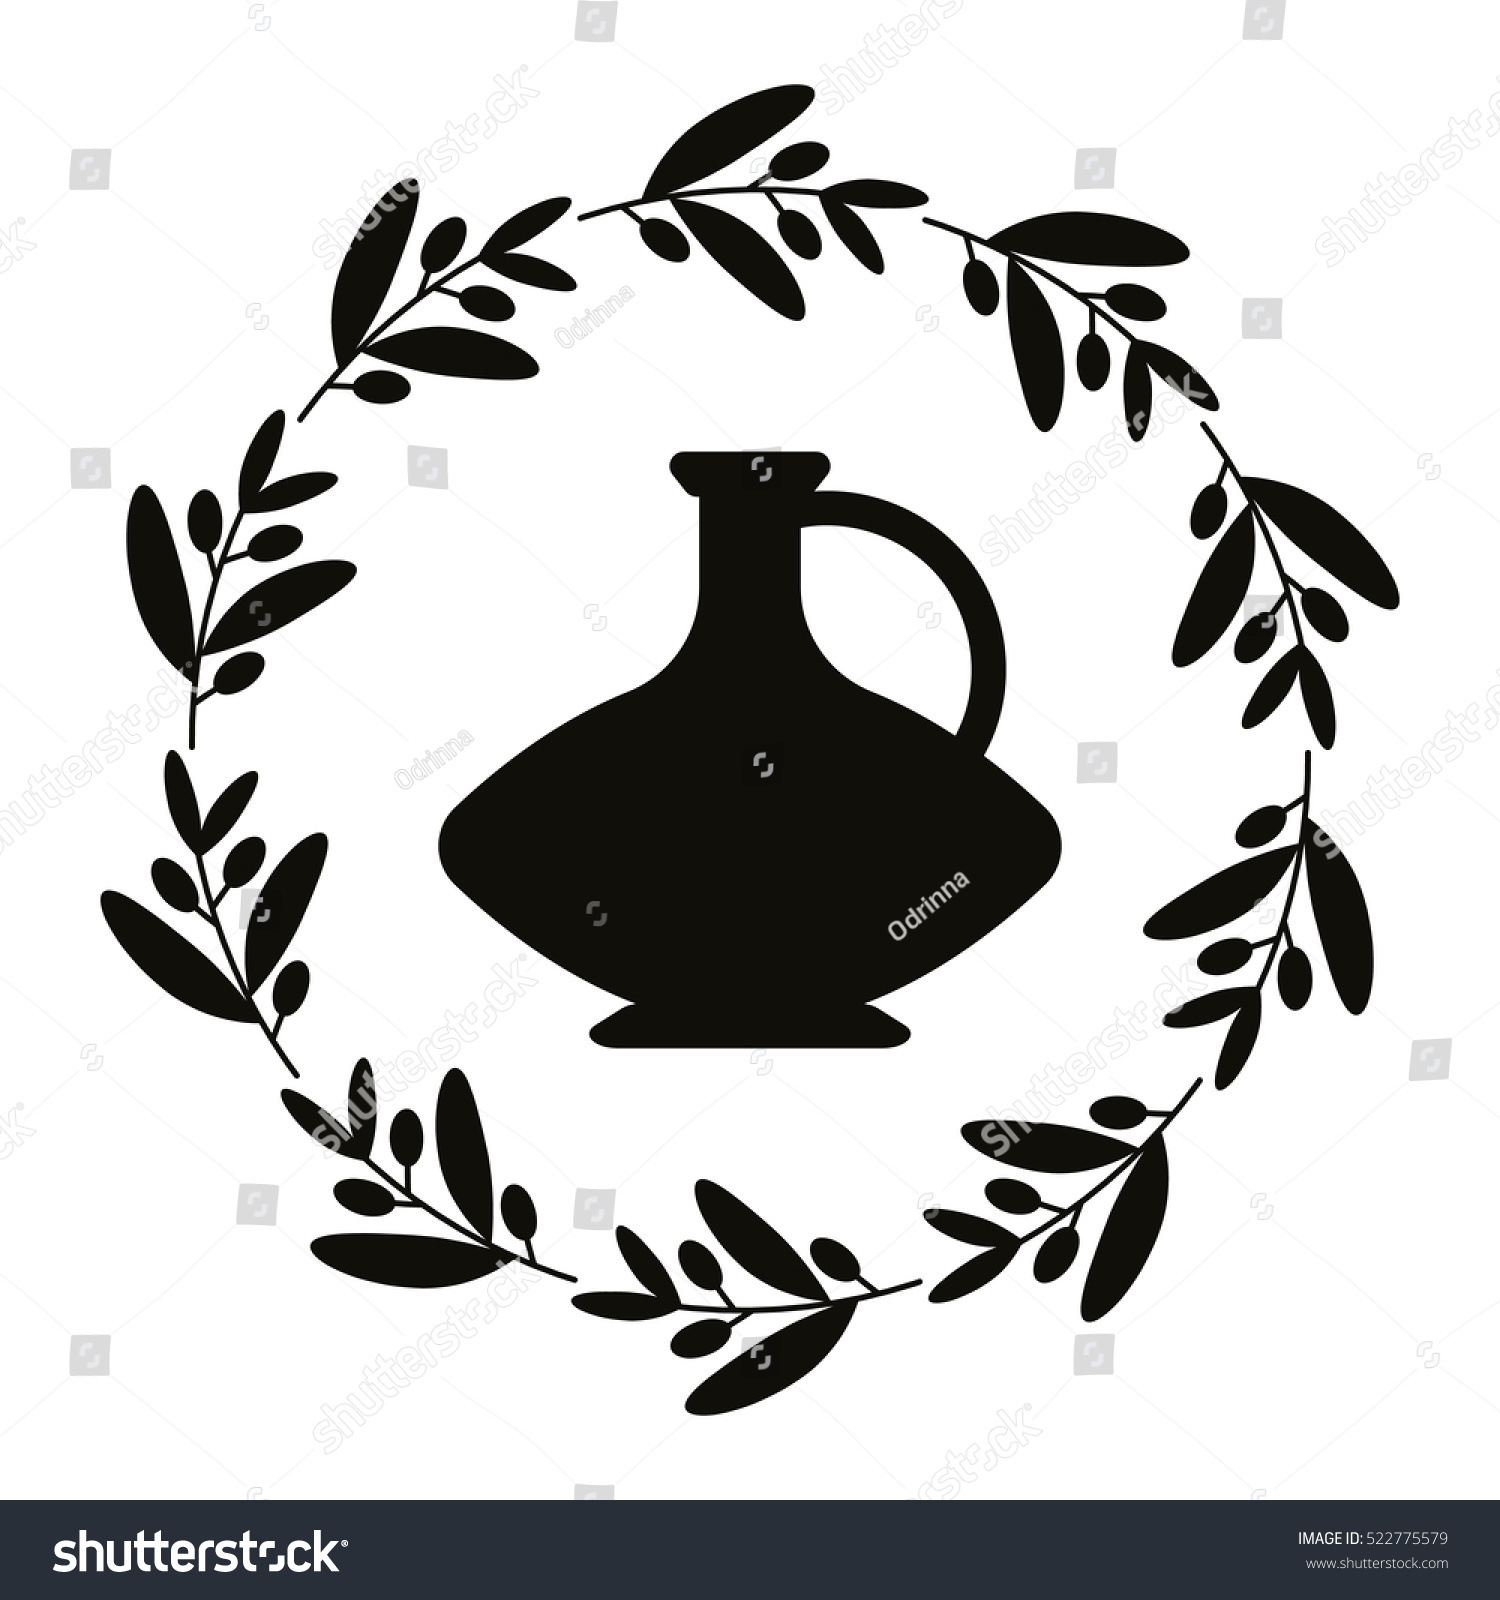 Ancient logo jug olive branch greek stock vector 522775579 ancient logo with jug and olive branch greek black vase with olive oil isolated on reviewsmspy